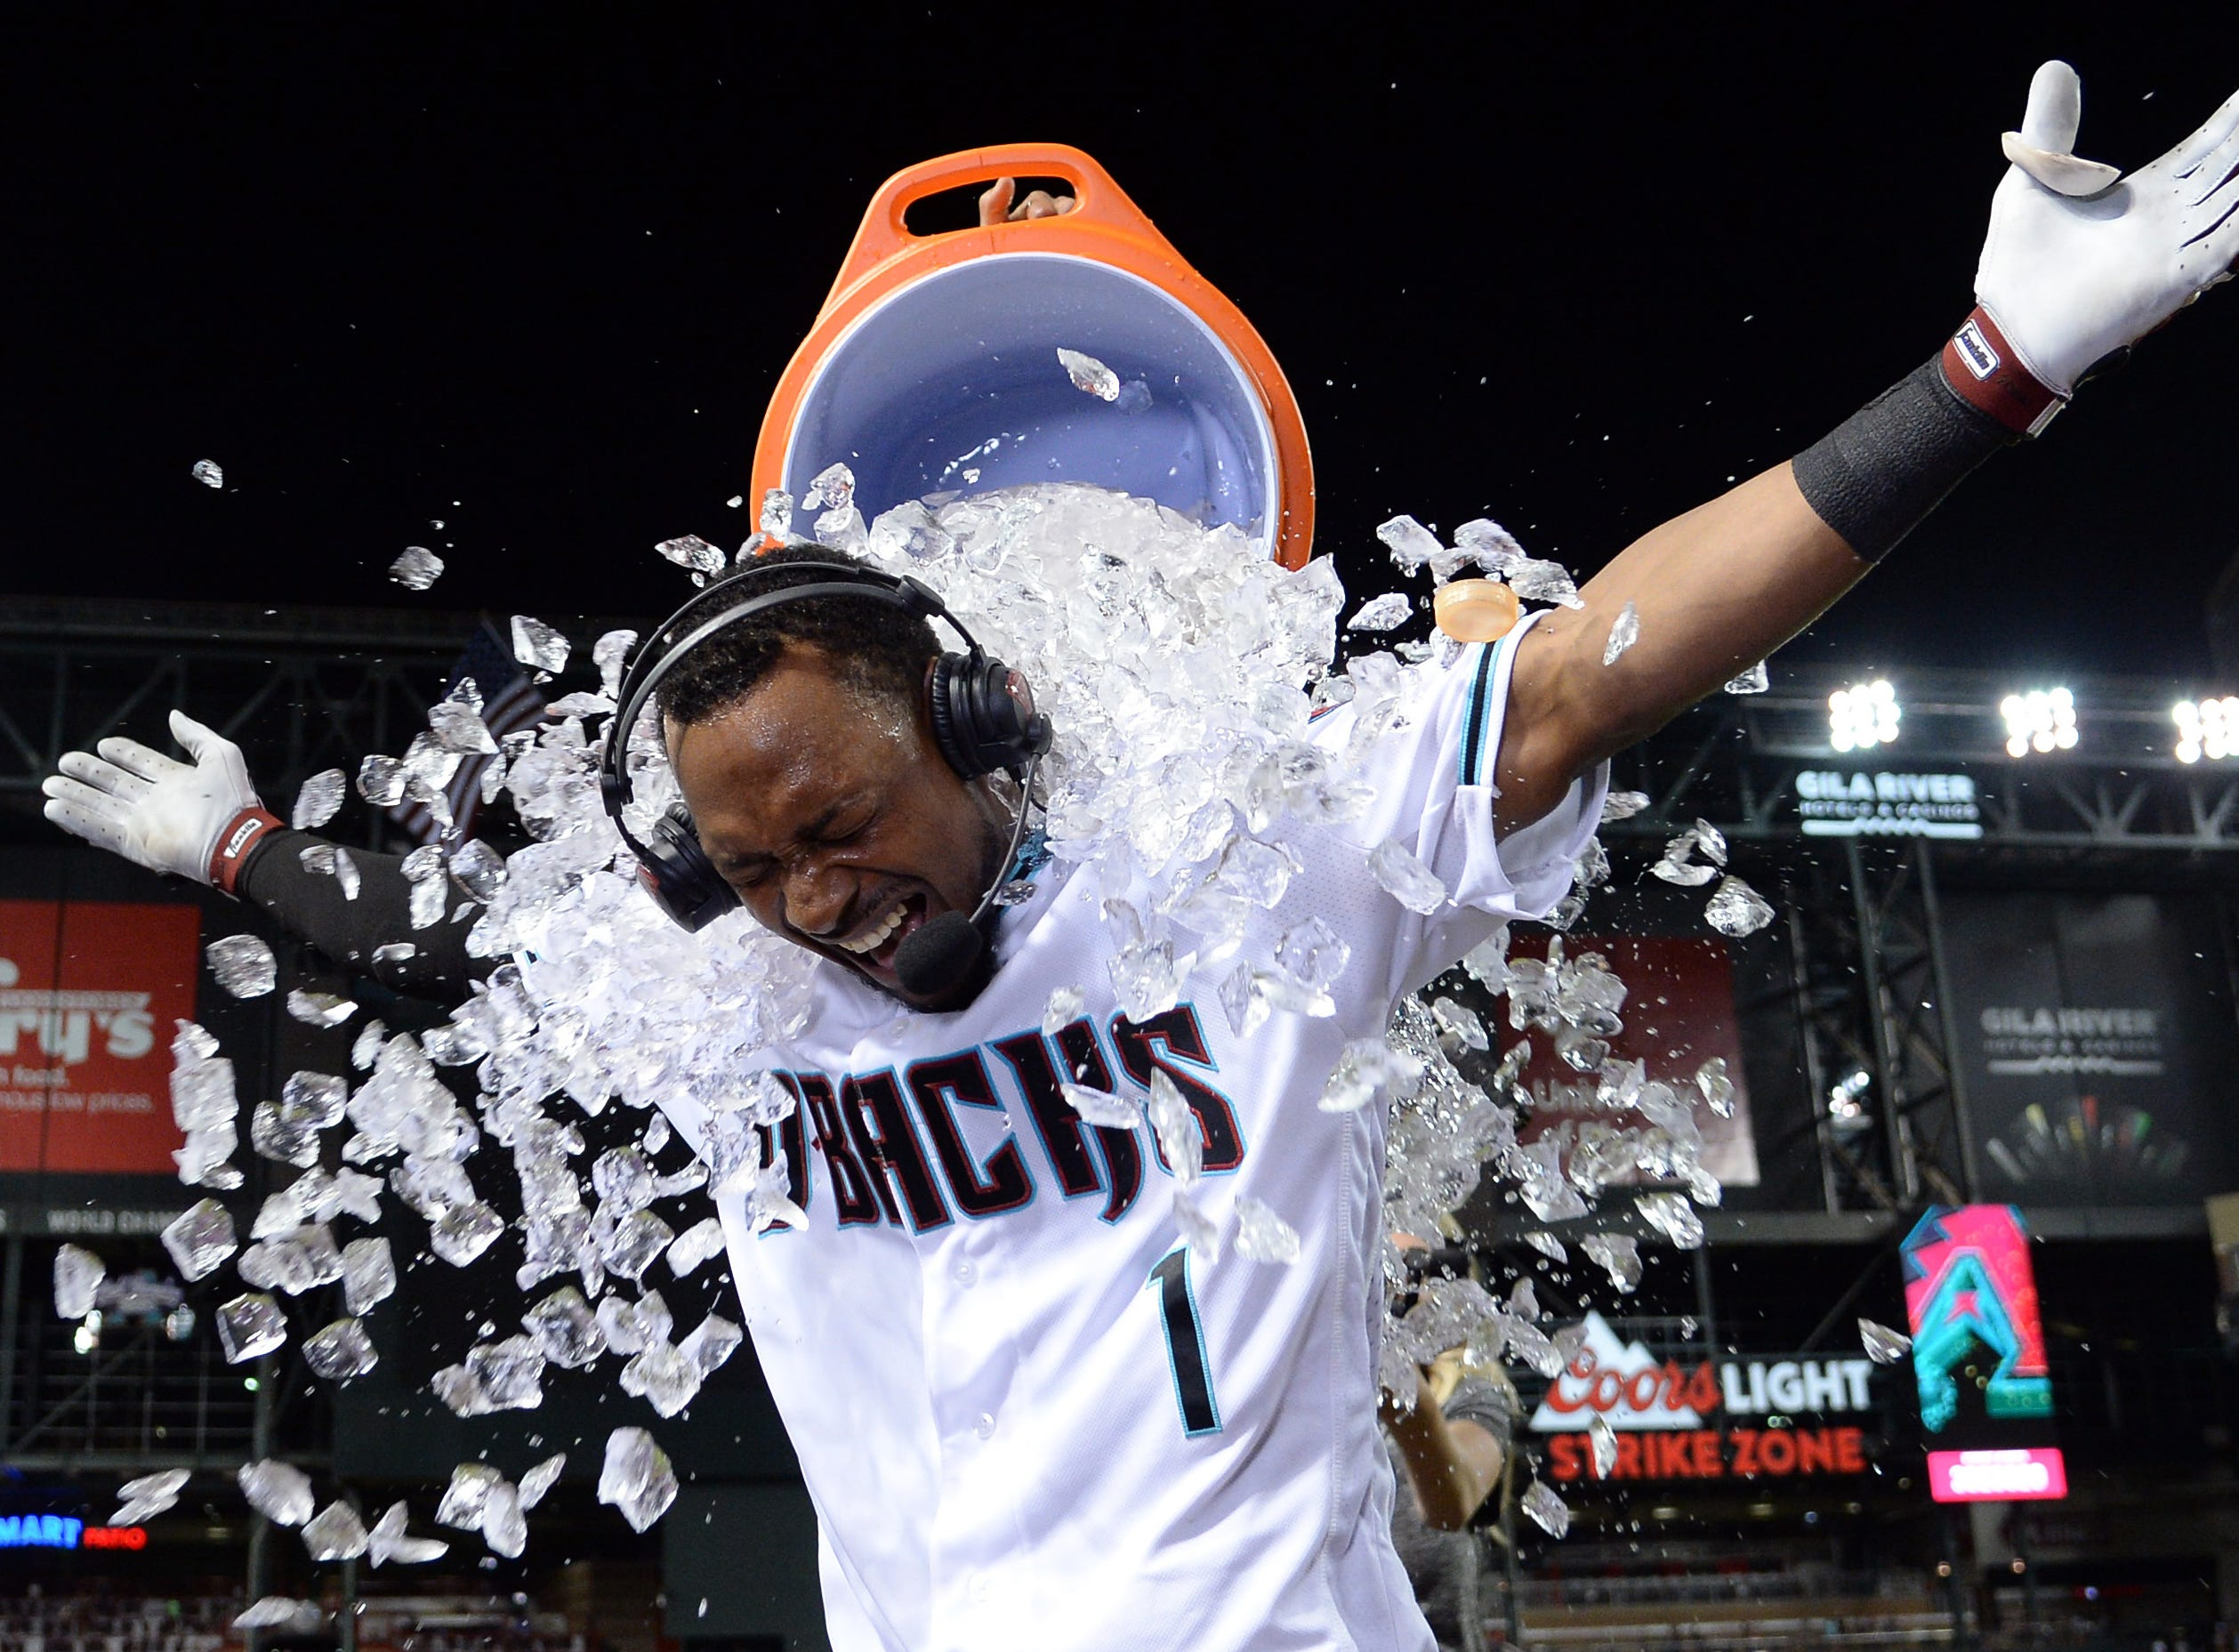 Apr 9, 2019; Phoenix, AZ, USA; Arizona Diamondbacks center fielder Jarrod Dyson (1) reacts as he is doused with Gatorade after ninth inning walk off two run home run against the Texas Rangers at Chase Field. Mandatory Credit: Joe Camporeale-USA TODAY Sports